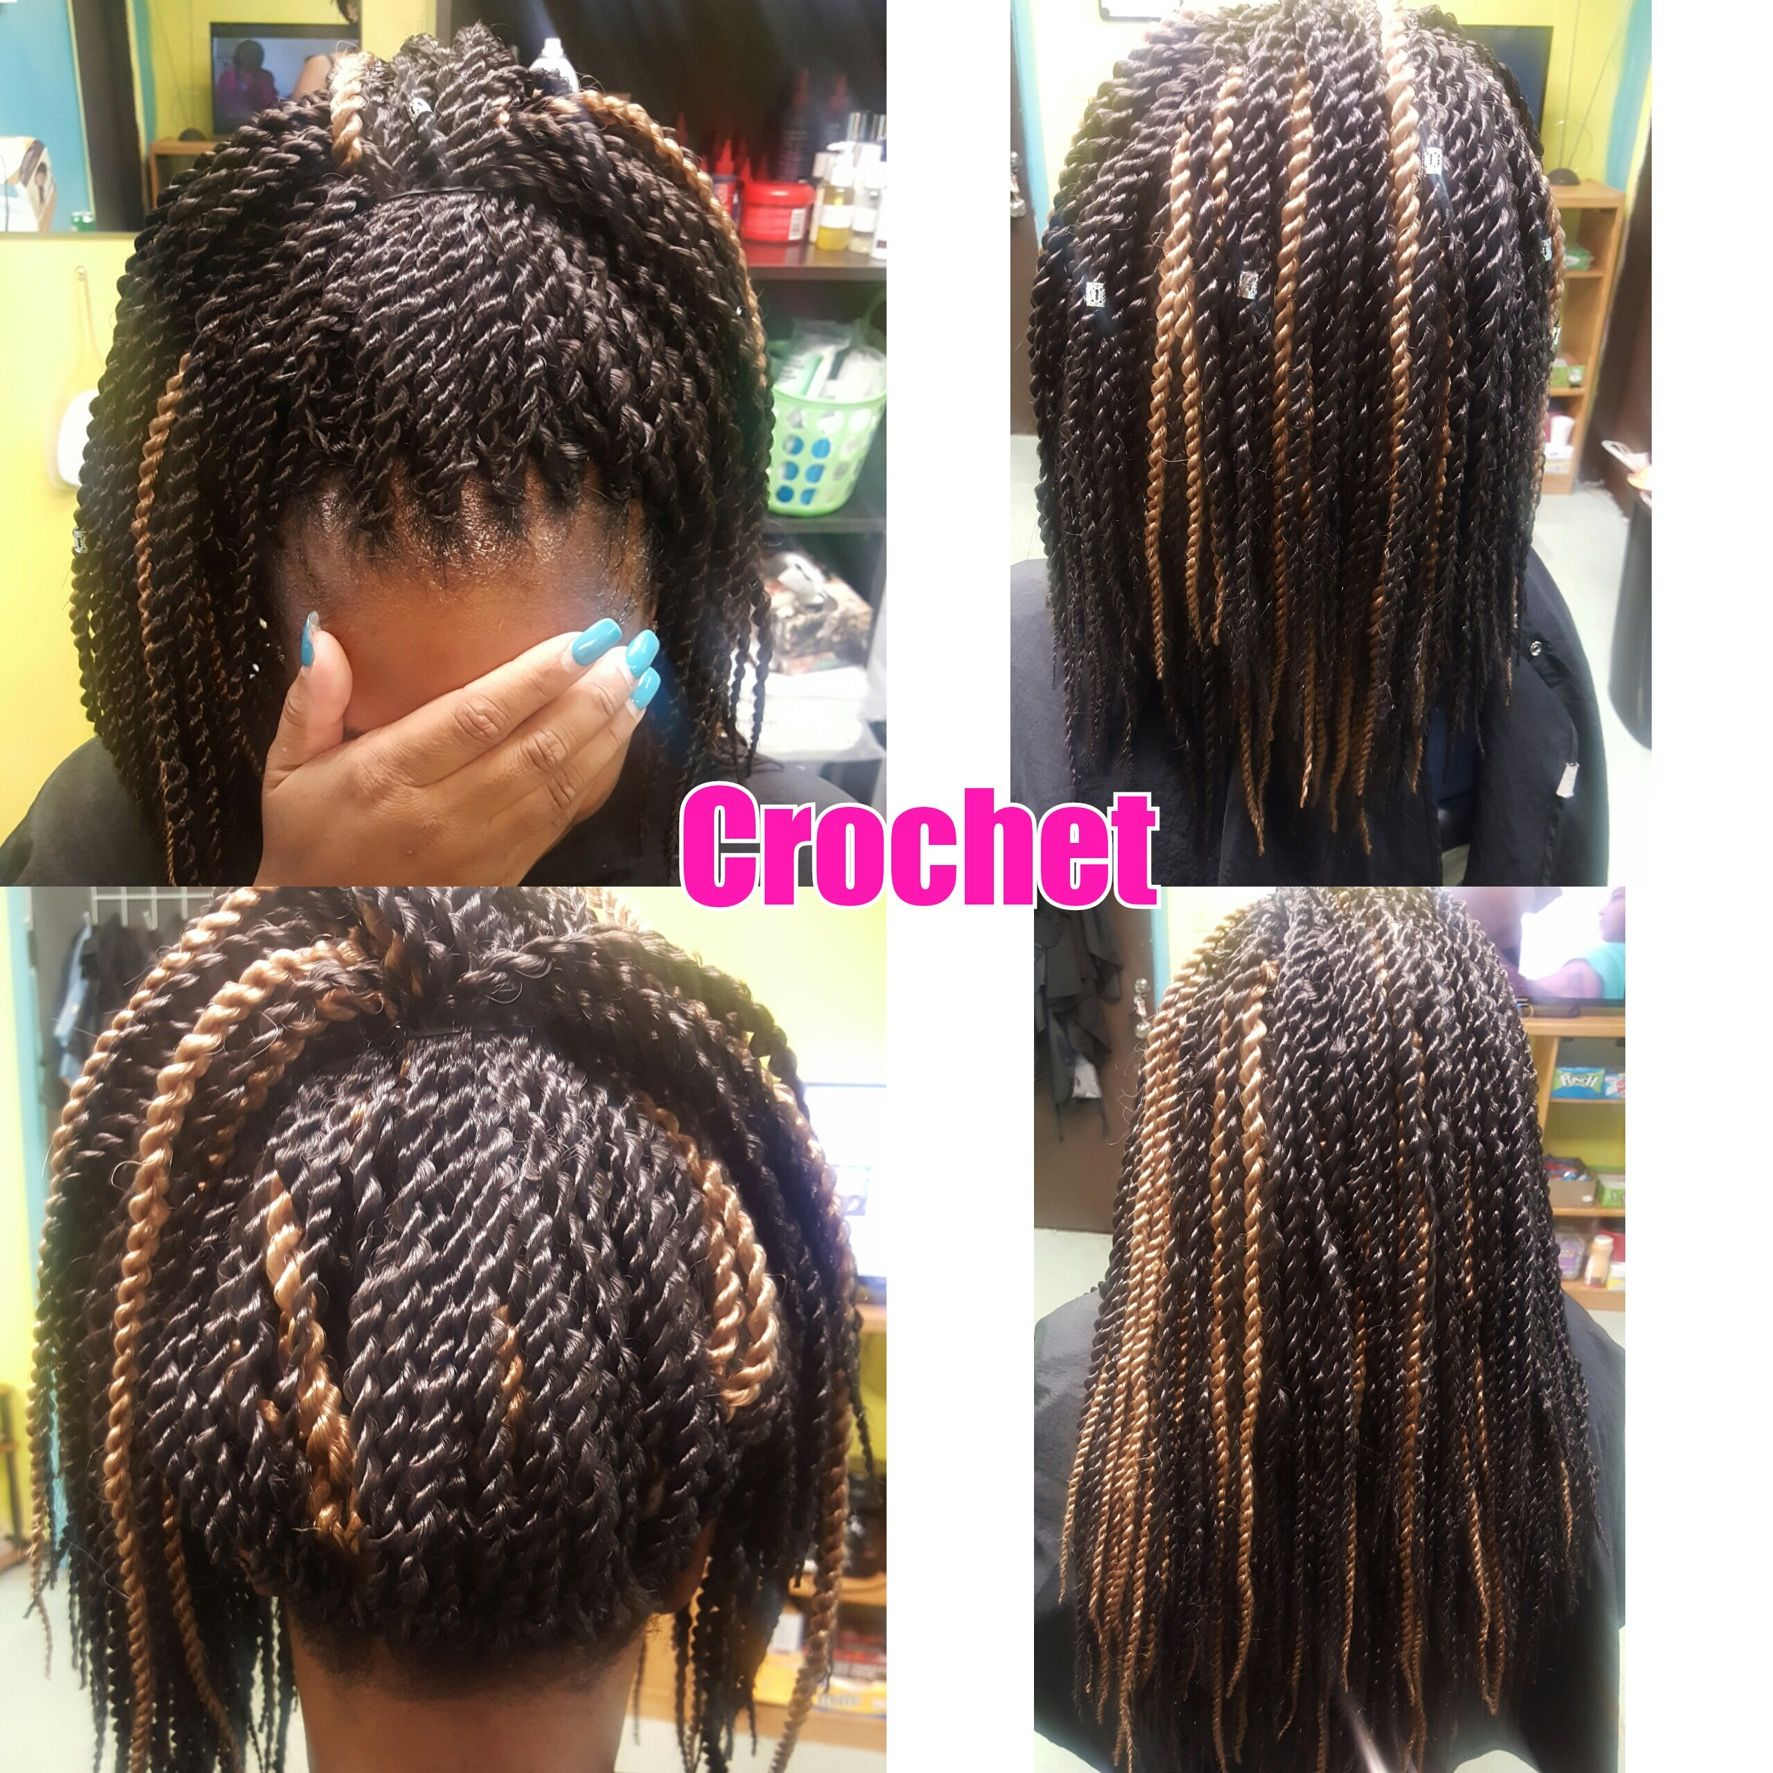 Crochet   CALL 601-946-5161 for appointments